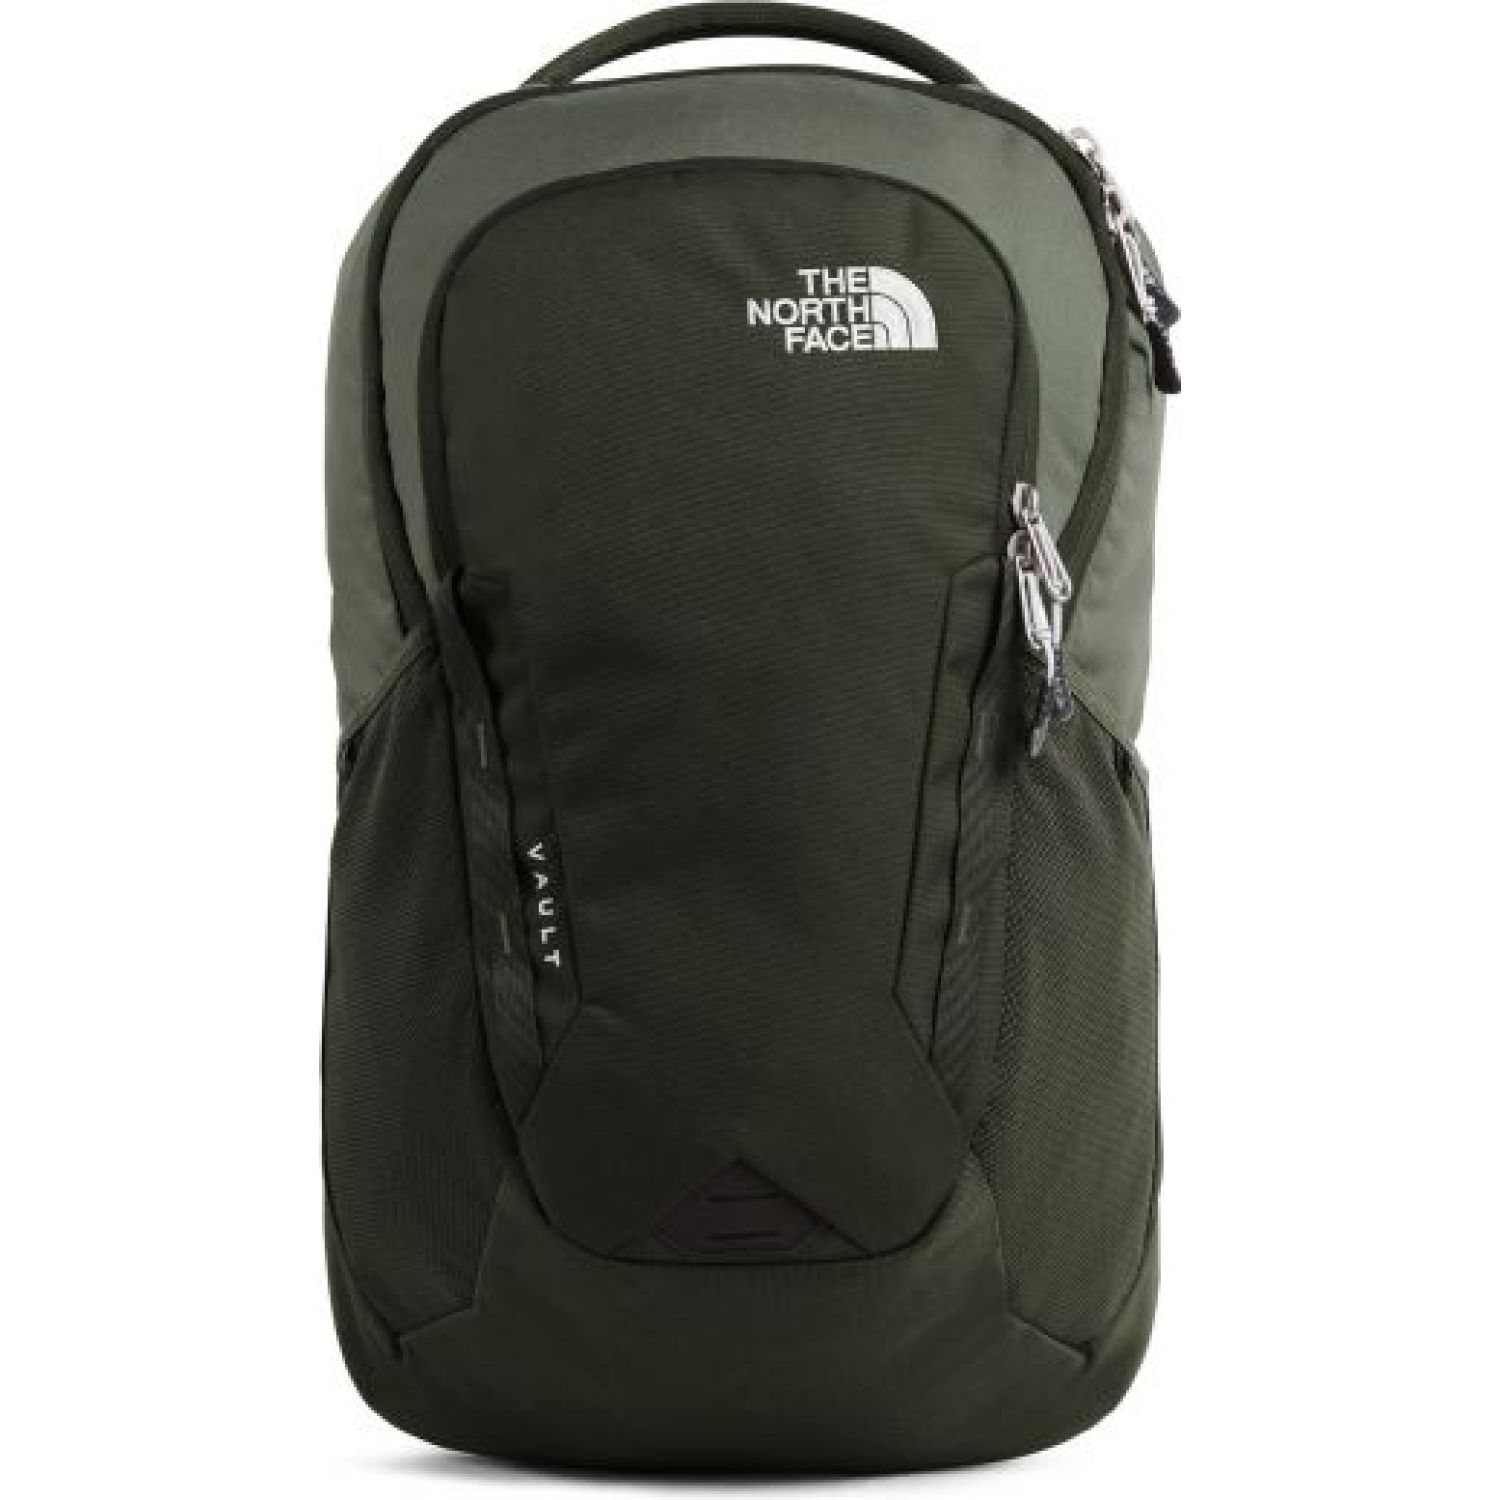 The North Face Vault NEGRO / GRIS Mochilas multipropósitos